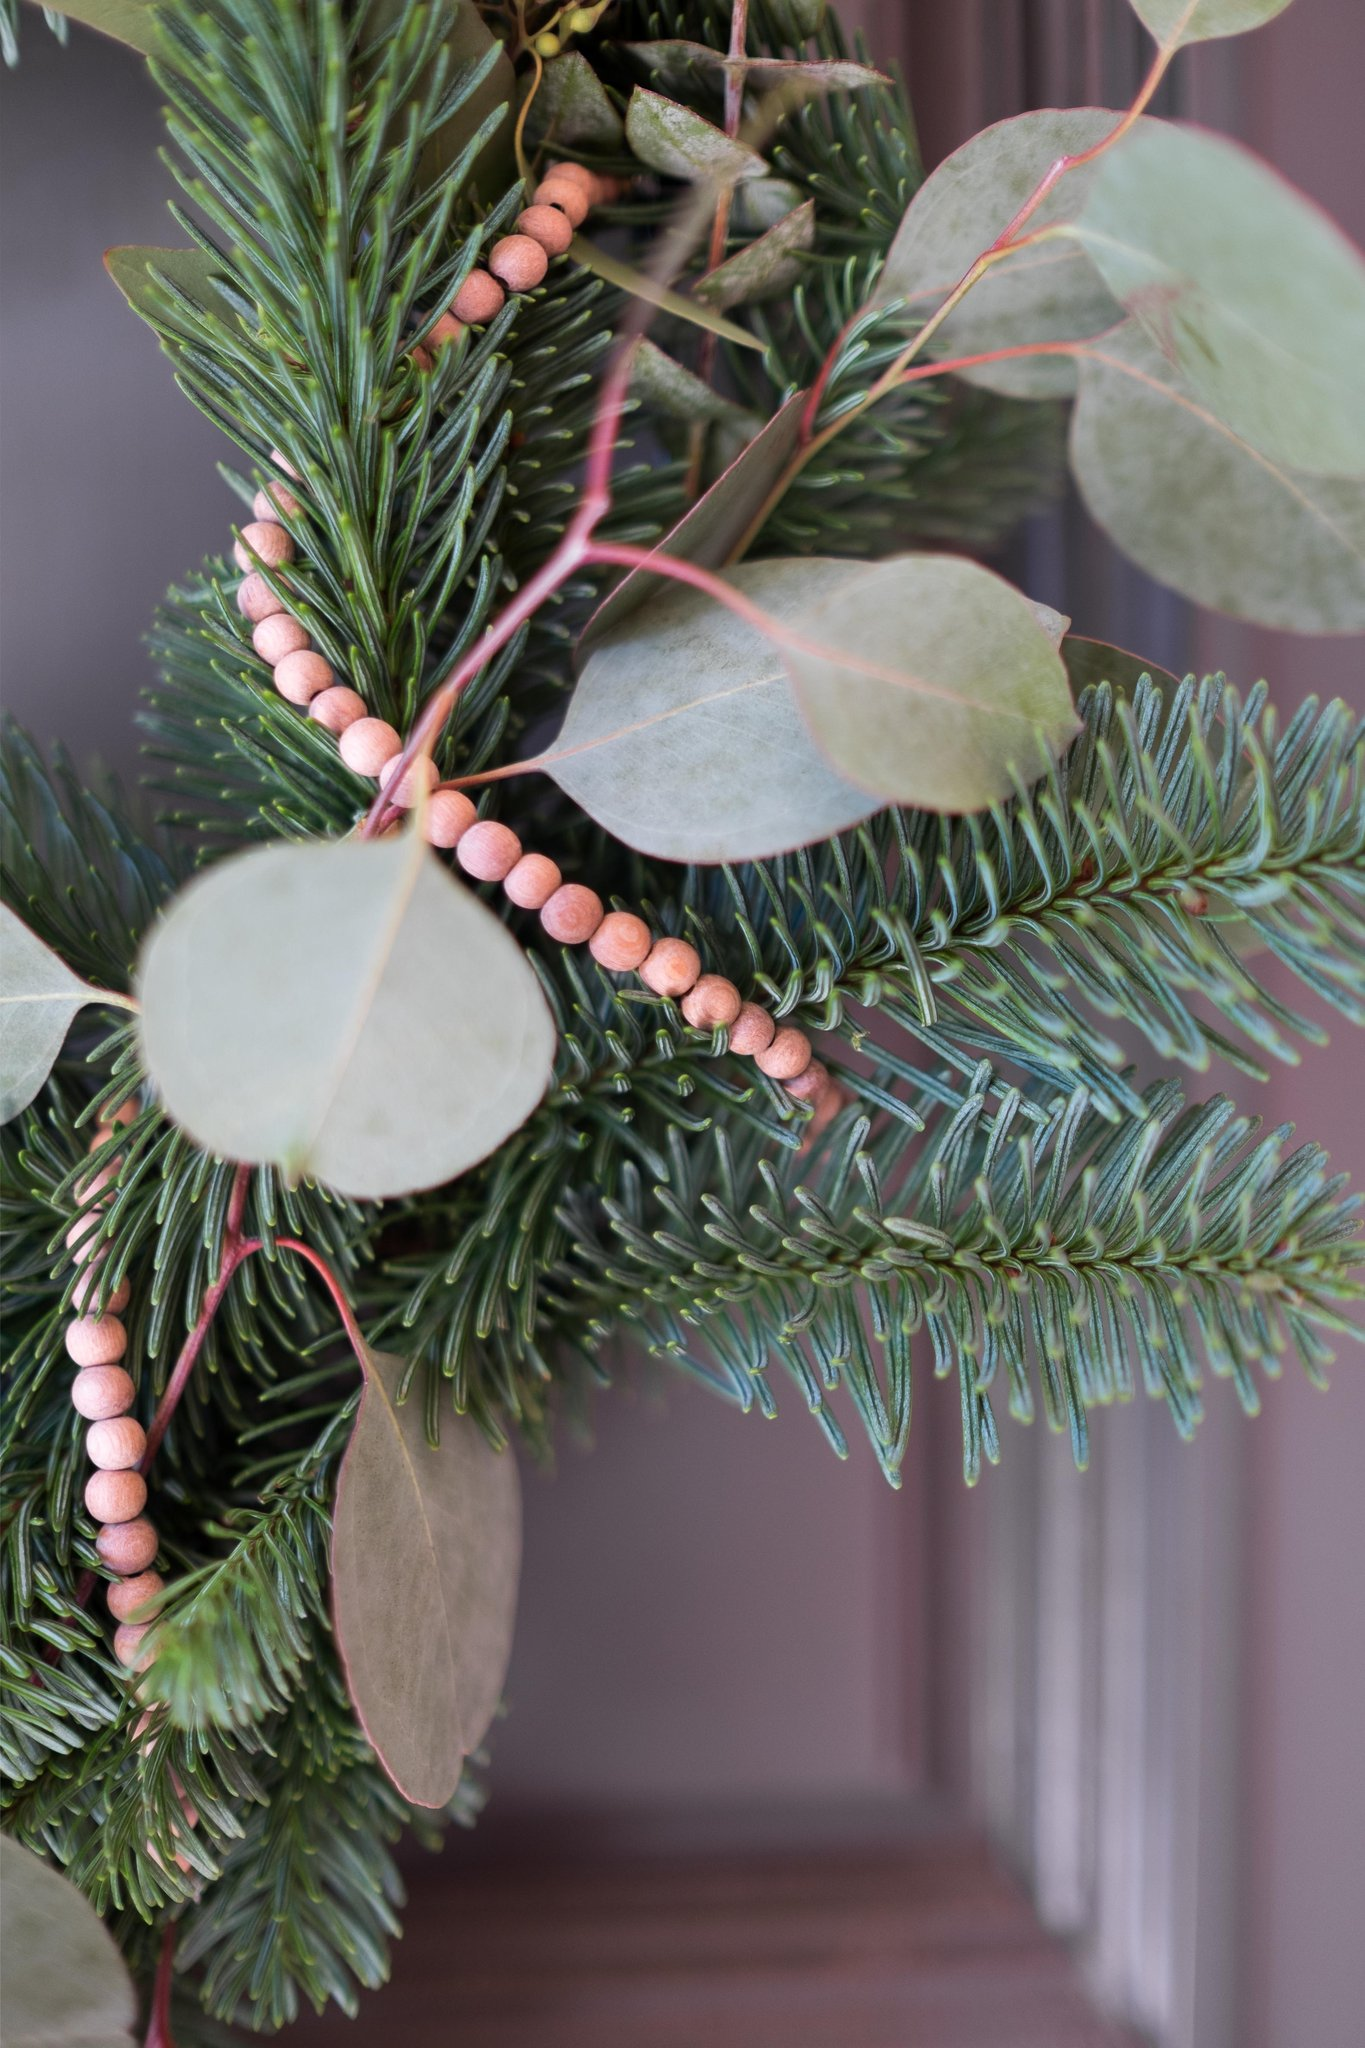 Love_Ding_Blog_DIY_Home_Wreath_Wooden_Bead_Accents.jpg